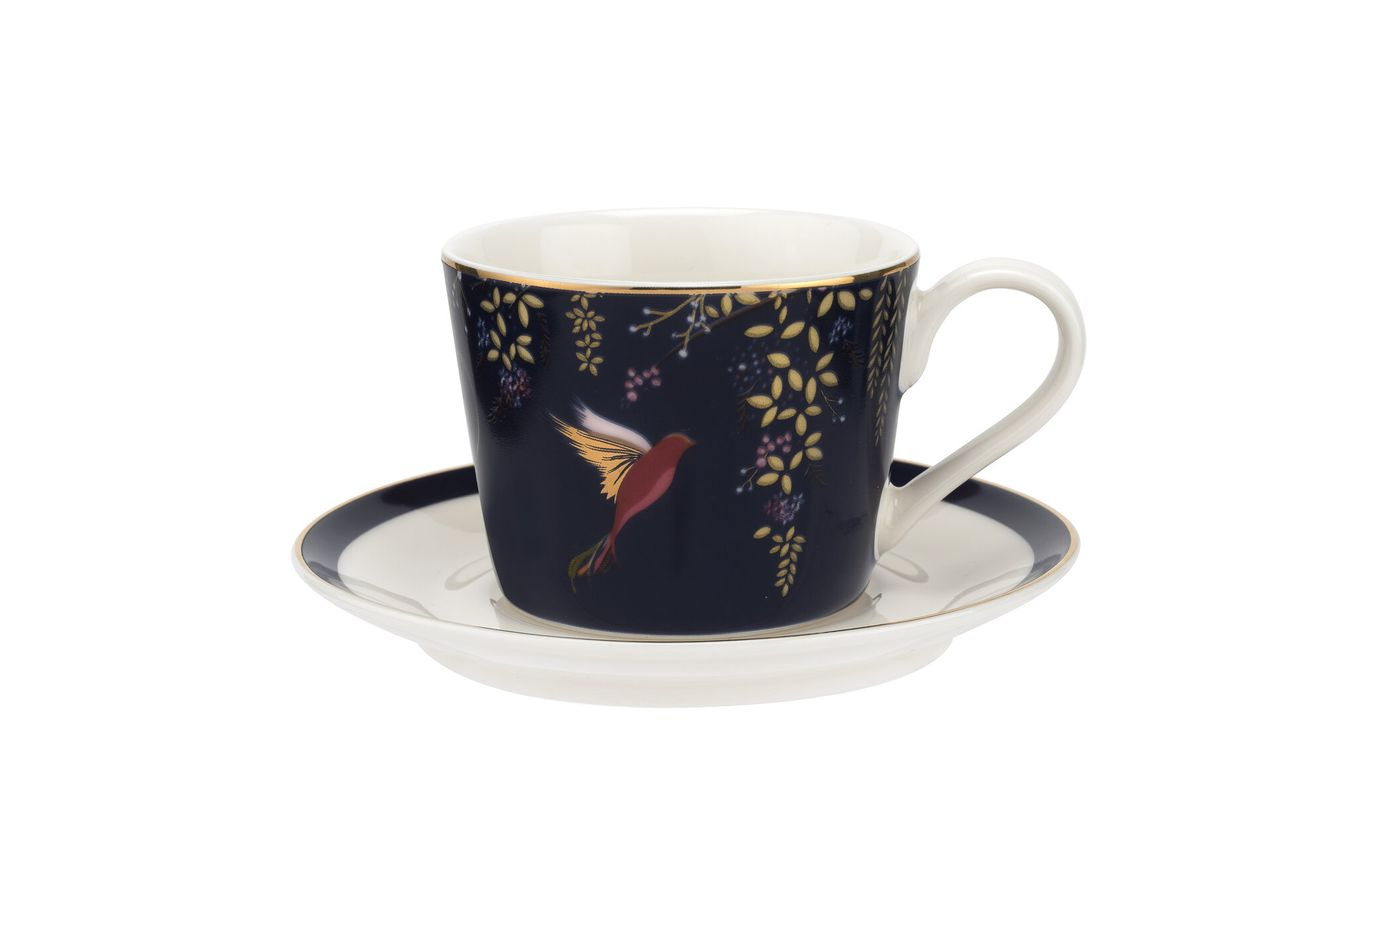 Sara Miller London for Portmeirion Chelsea Collection Espresso Cup & Saucer - Set of 4 0.11l thumb 3